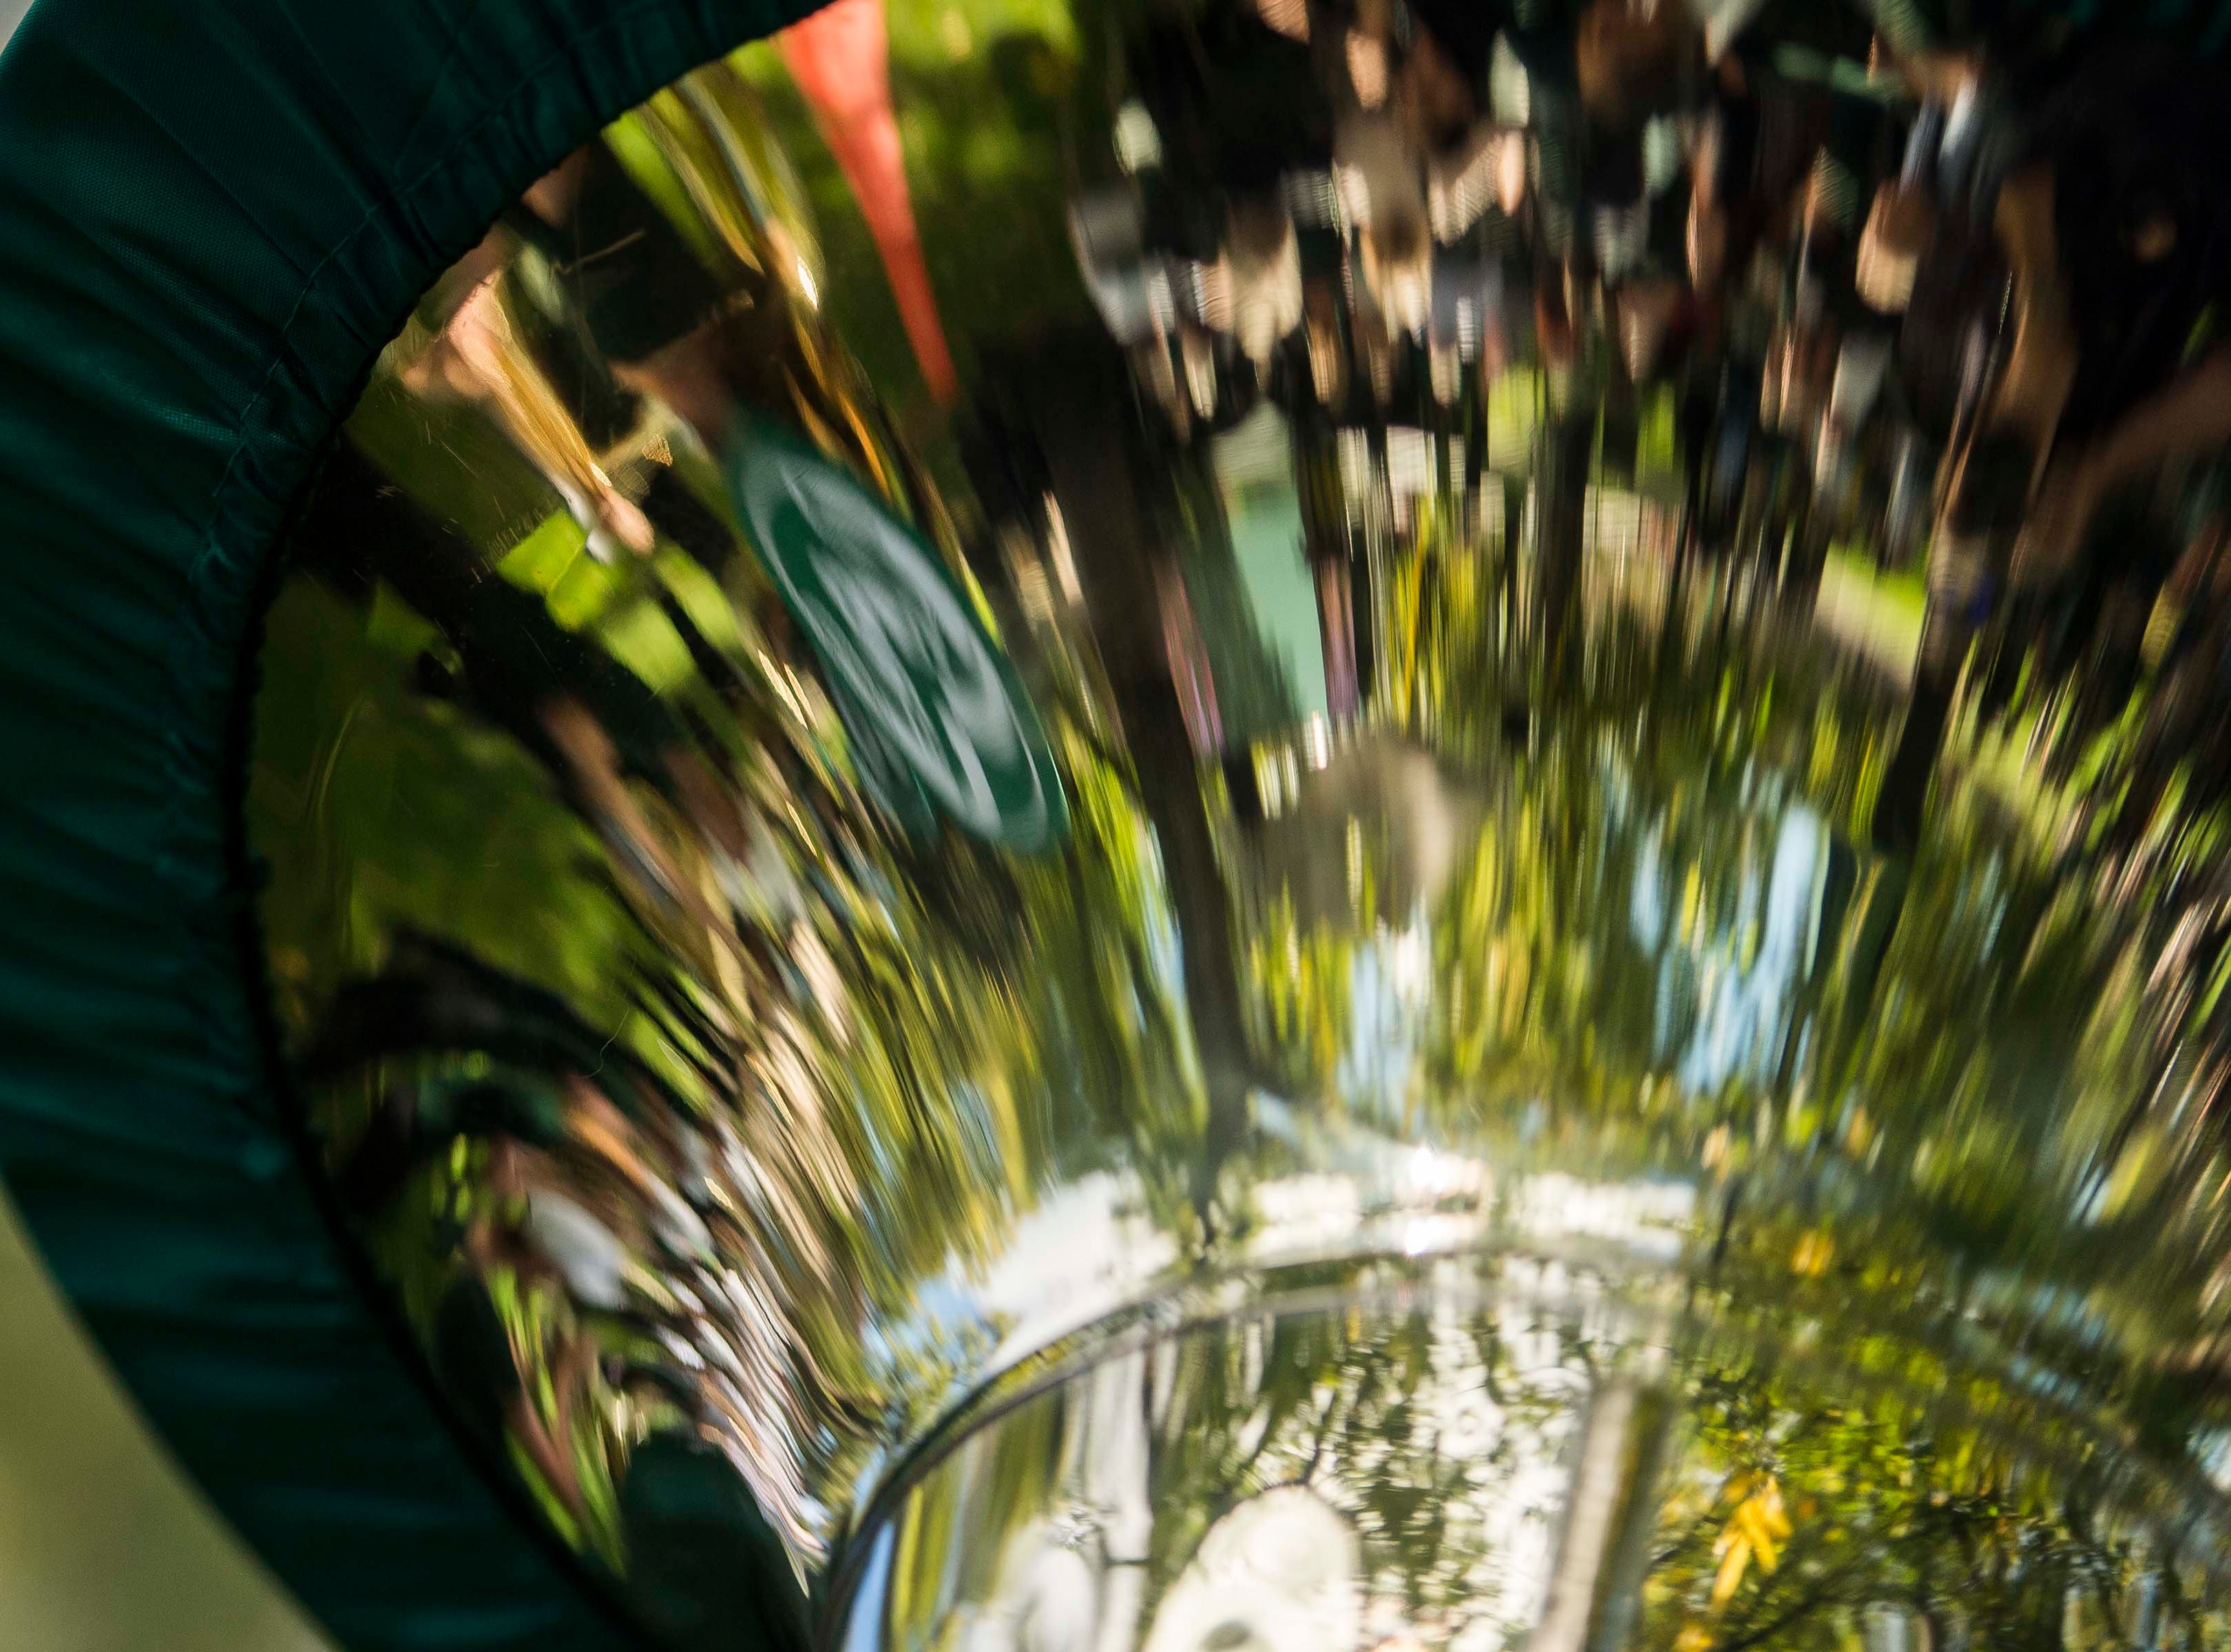 The CSU marching band is reflected in a tuba on Wednesday, Oct. 3, 2018, during the 2018 fall address at the Colorado State University campus in Fort Collins, Colo.